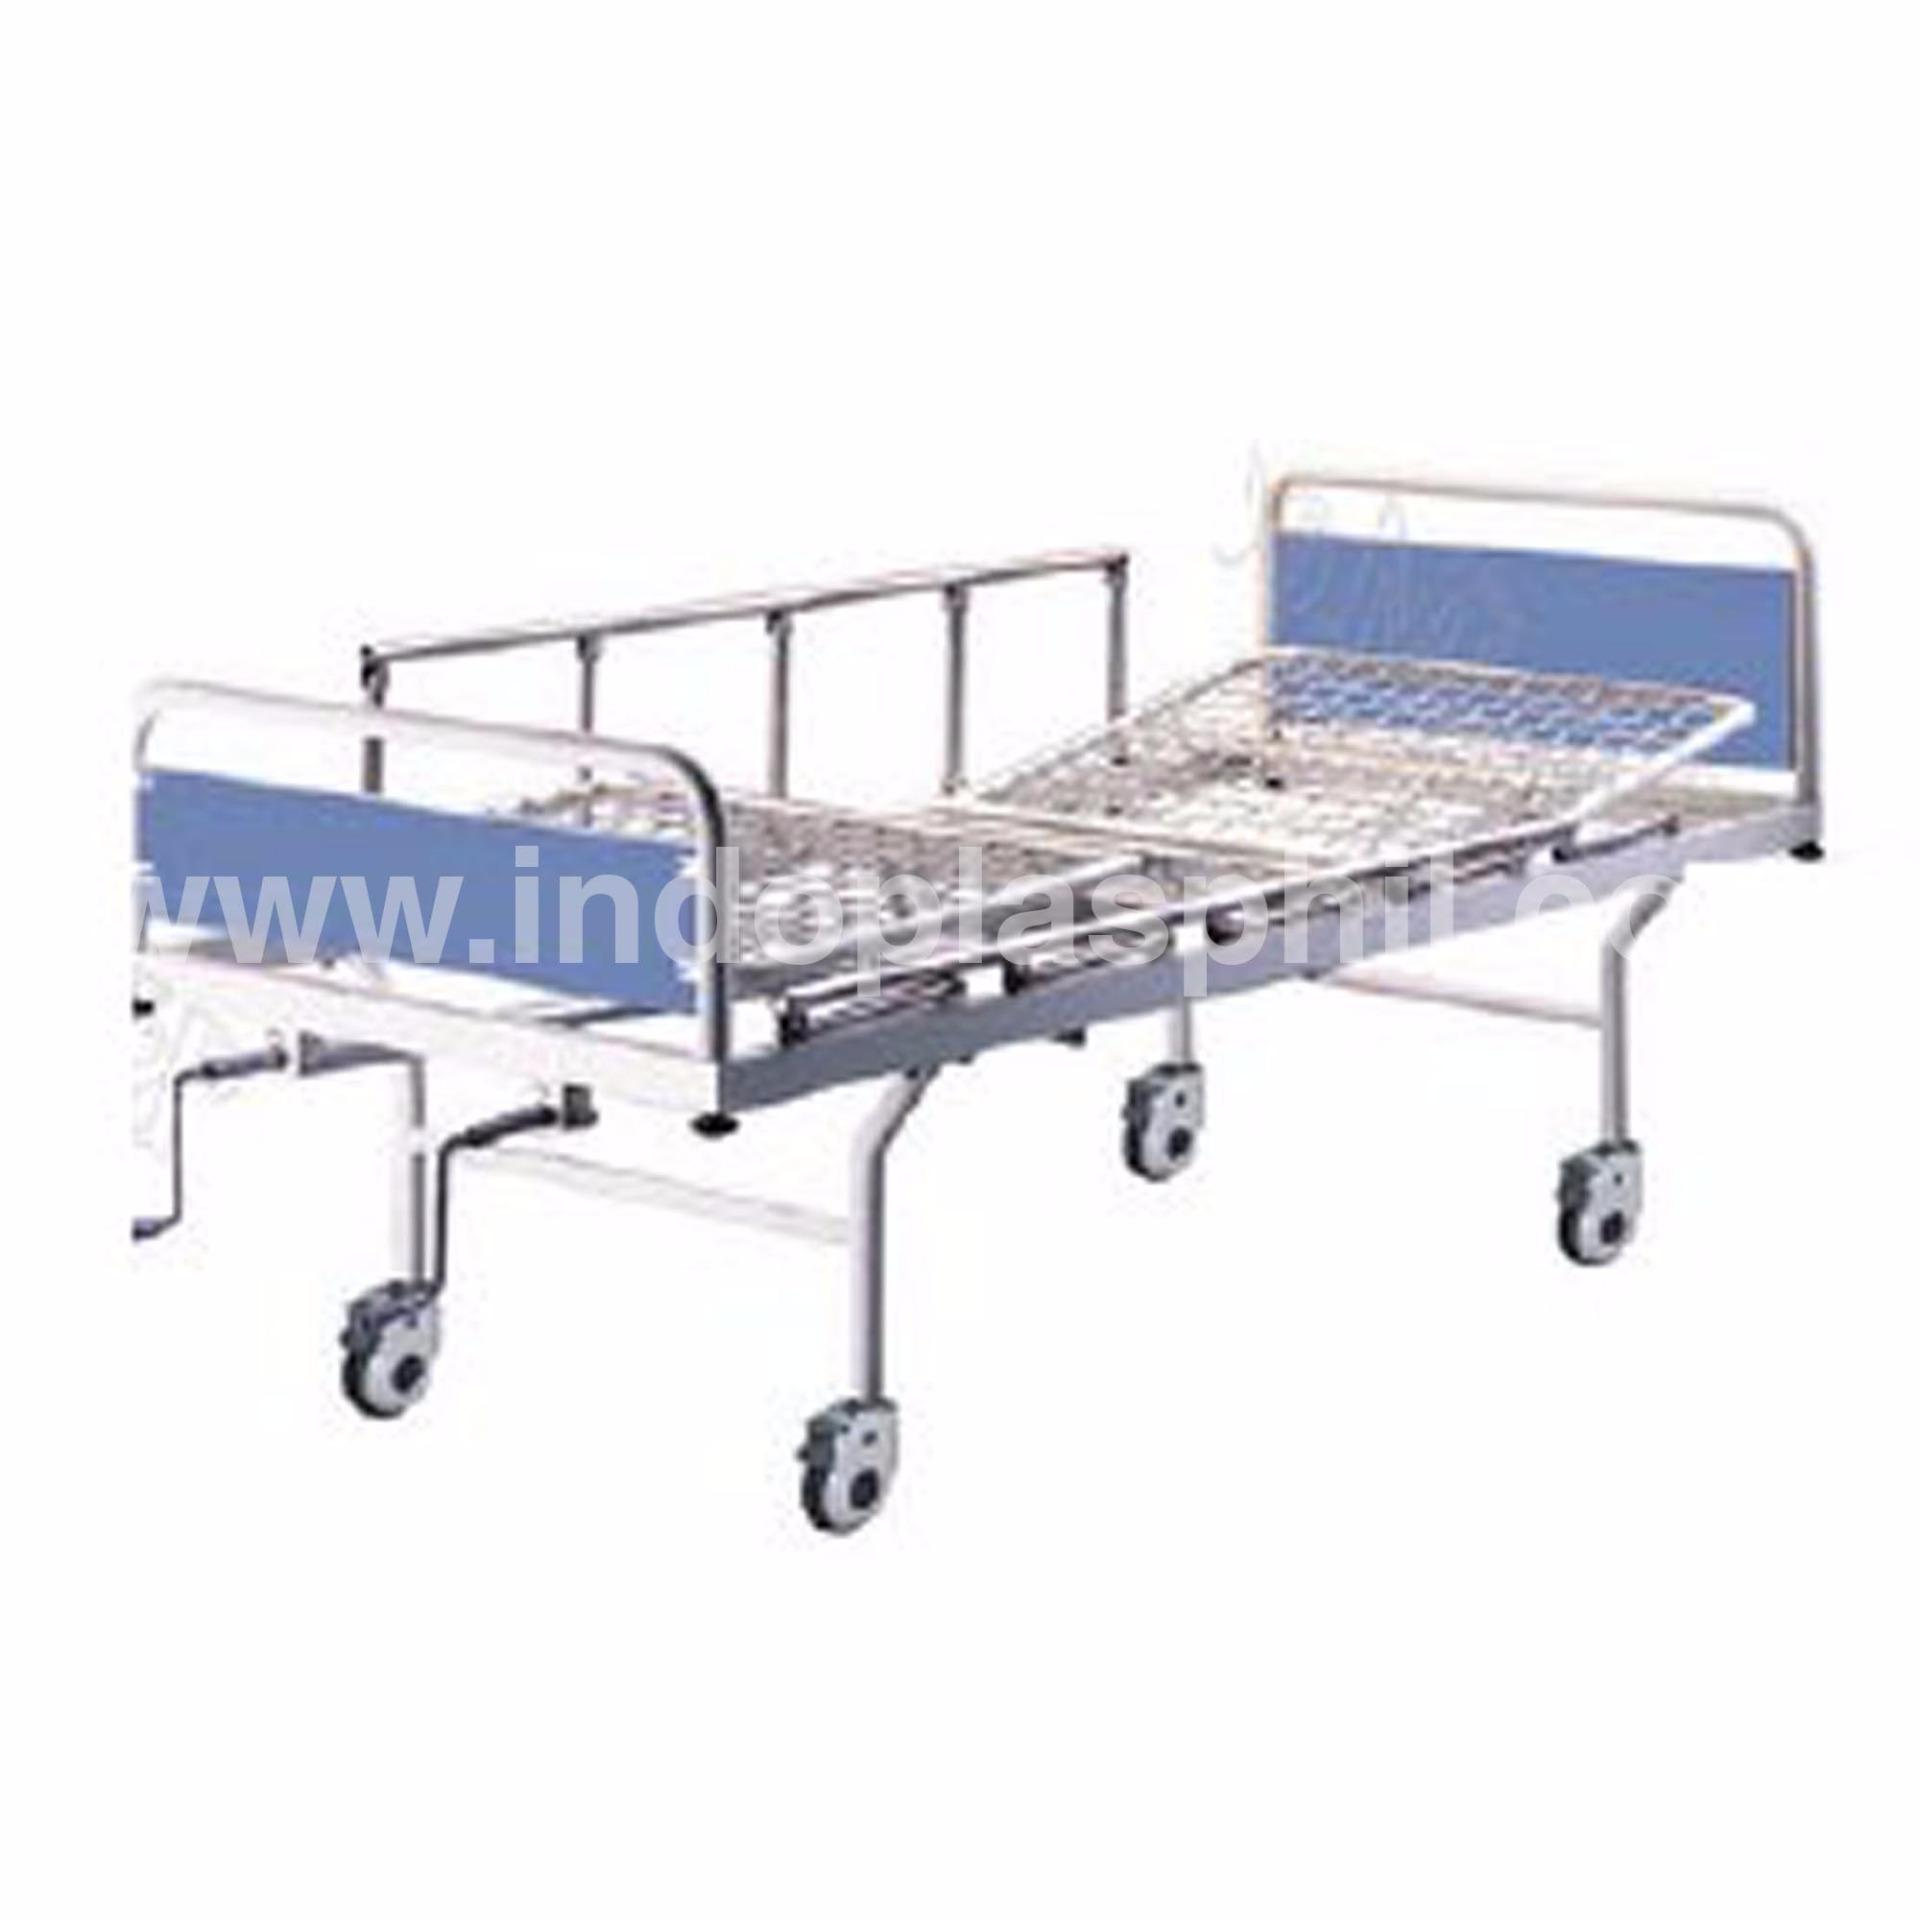 new bamboo table pin overbed bedside desk adult rolling finish hospital tray bed